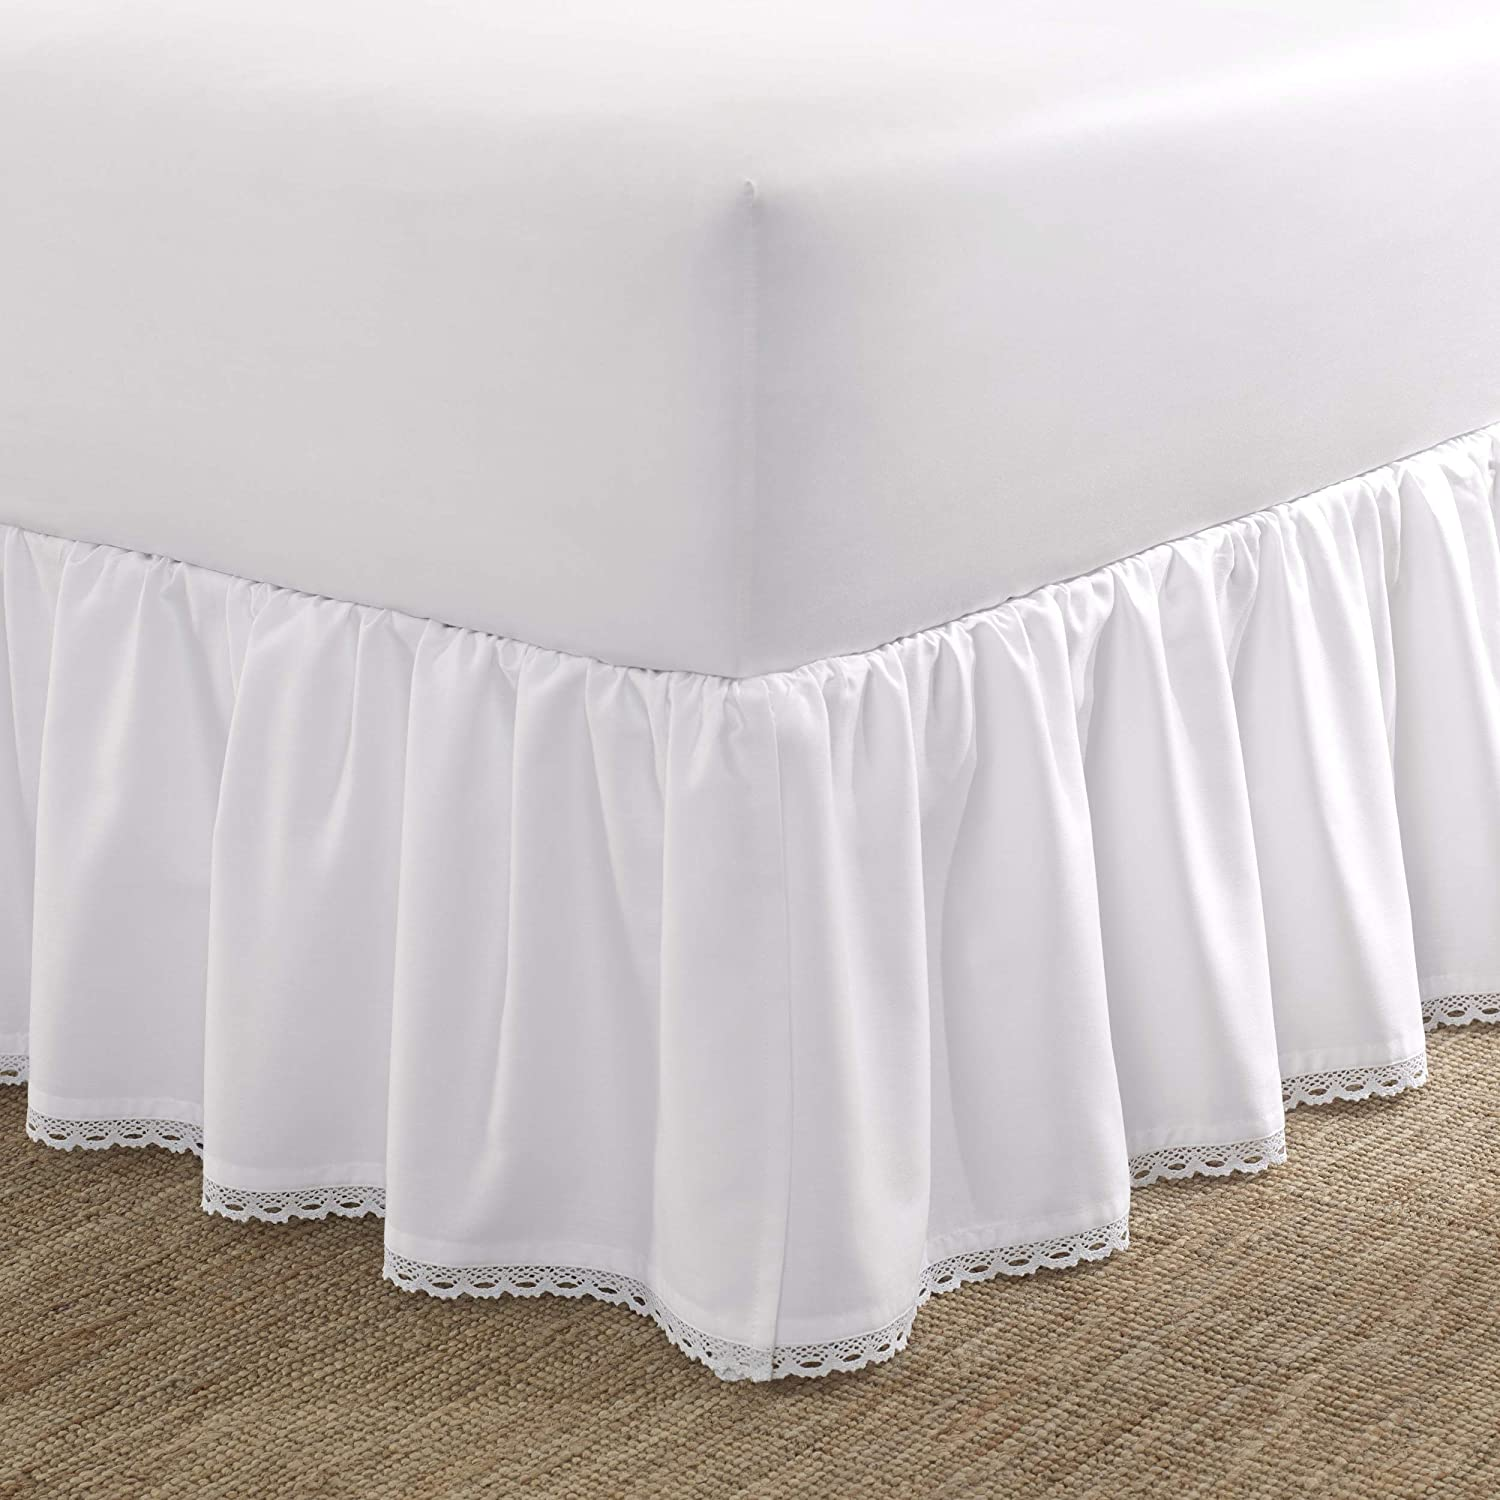 Laura Ashley Home | Crochet Ruffle Collection | Luxury Premium Hotel Quality Bedskirt, Easy Fit, Anti Wrinkle & Fade Resistant, Stylish Design for Home Décor, Twin, White